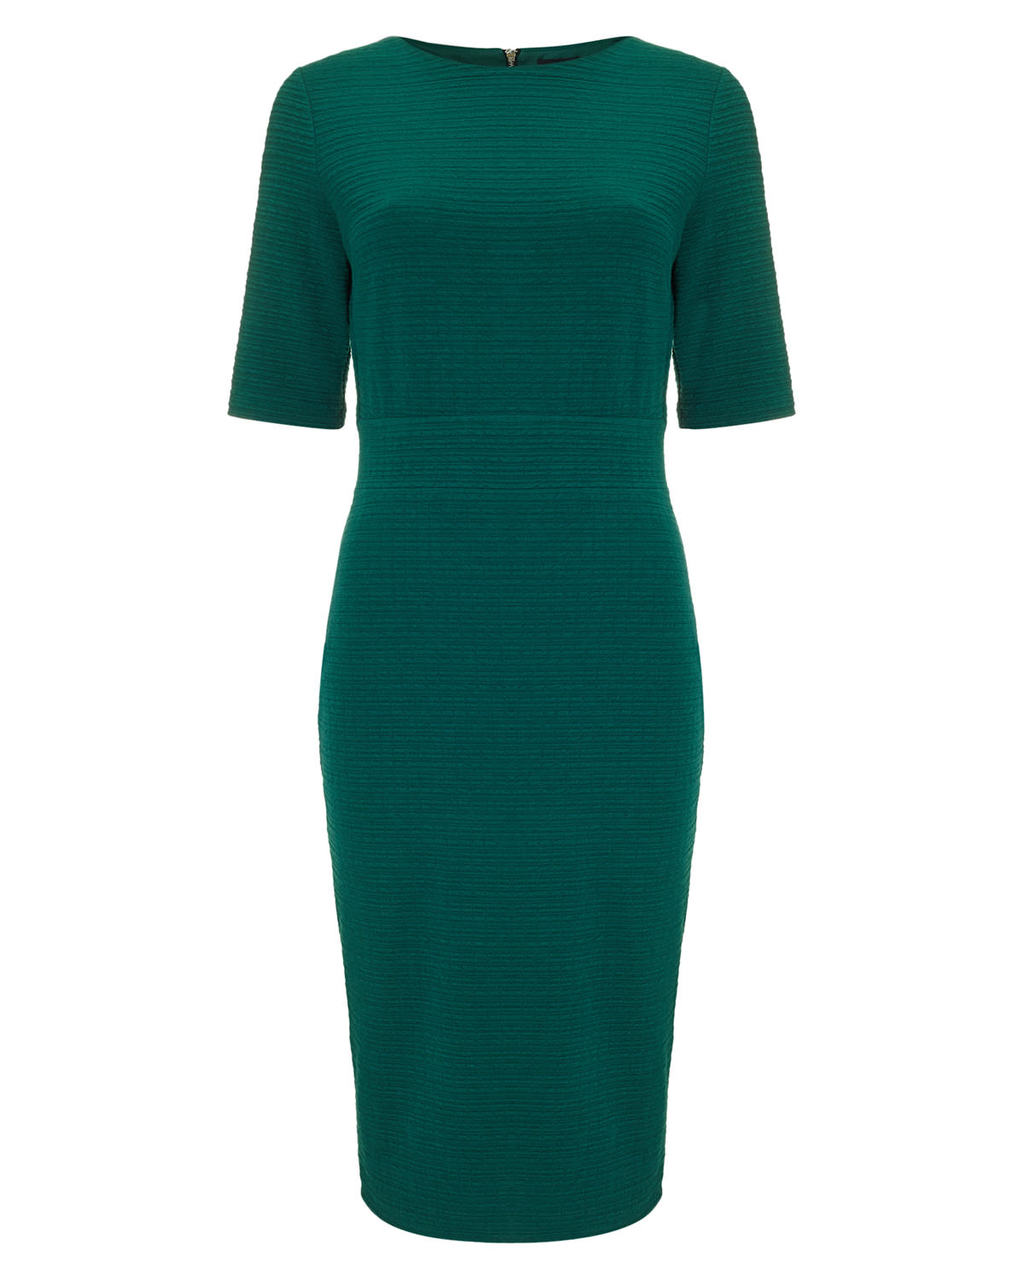 Tamzin Textured Midi Dress - style: shift; length: below the knee; pattern: plain; predominant colour: dark green; occasions: evening, occasion; fit: fitted at waist & bust; fibres: polyester/polyamide - stretch; neckline: crew; sleeve length: short sleeve; sleeve style: standard; pattern type: fabric; texture group: jersey - stretchy/drapey; season: a/w 2015; wardrobe: event